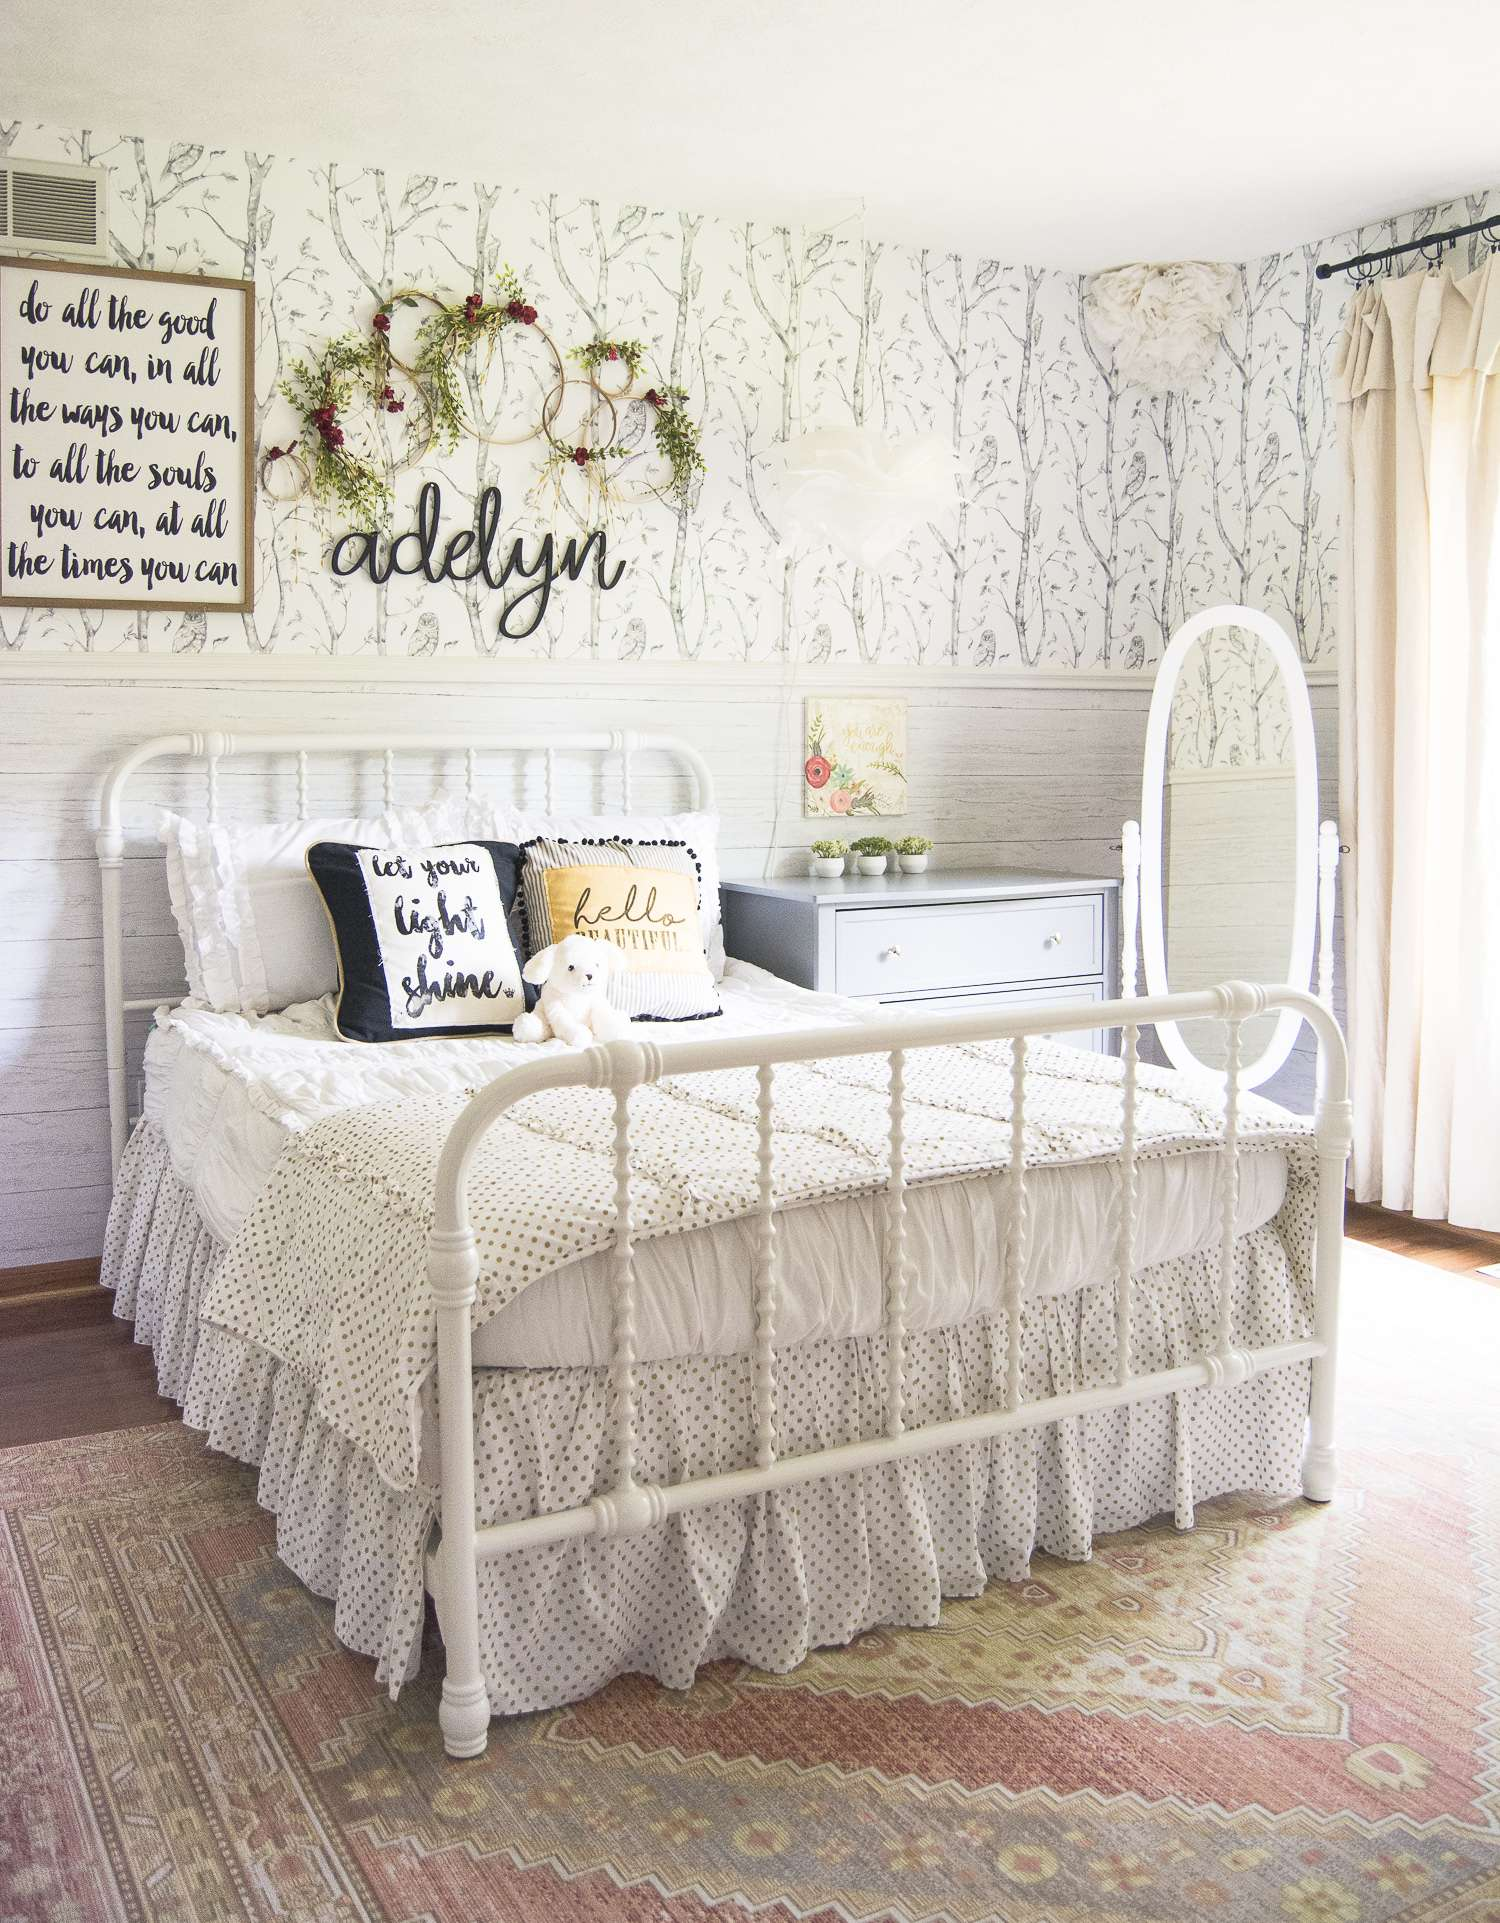 Do you want to create a beautiful girls bedroom for someone special? See how I created structure and playfulness with design in my girls bedroom reveal.